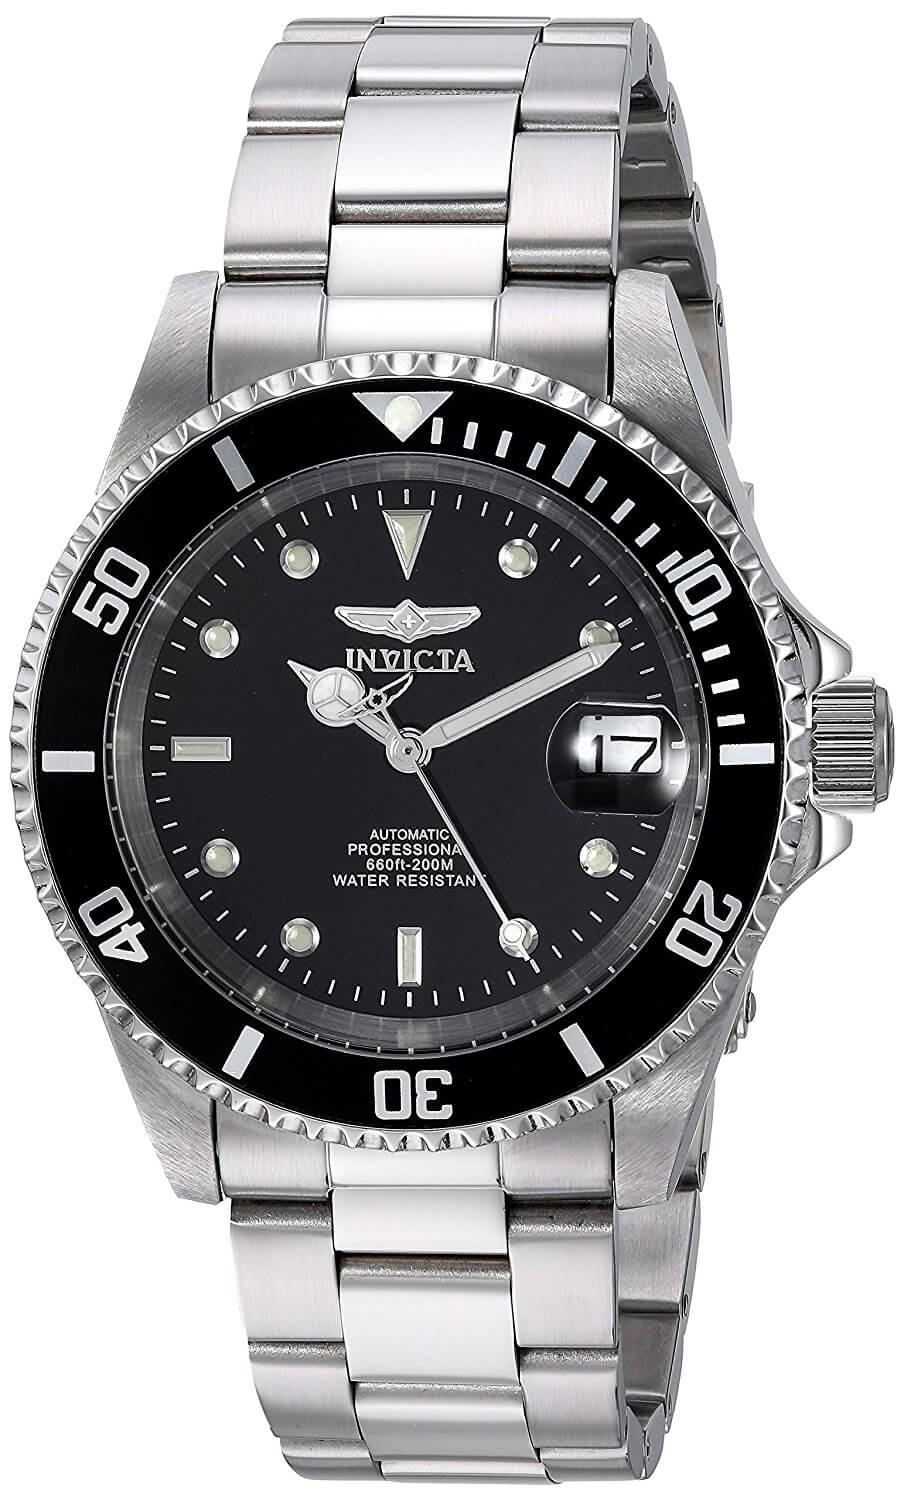 Invicta Watches – Min 35% Off For Men & Women